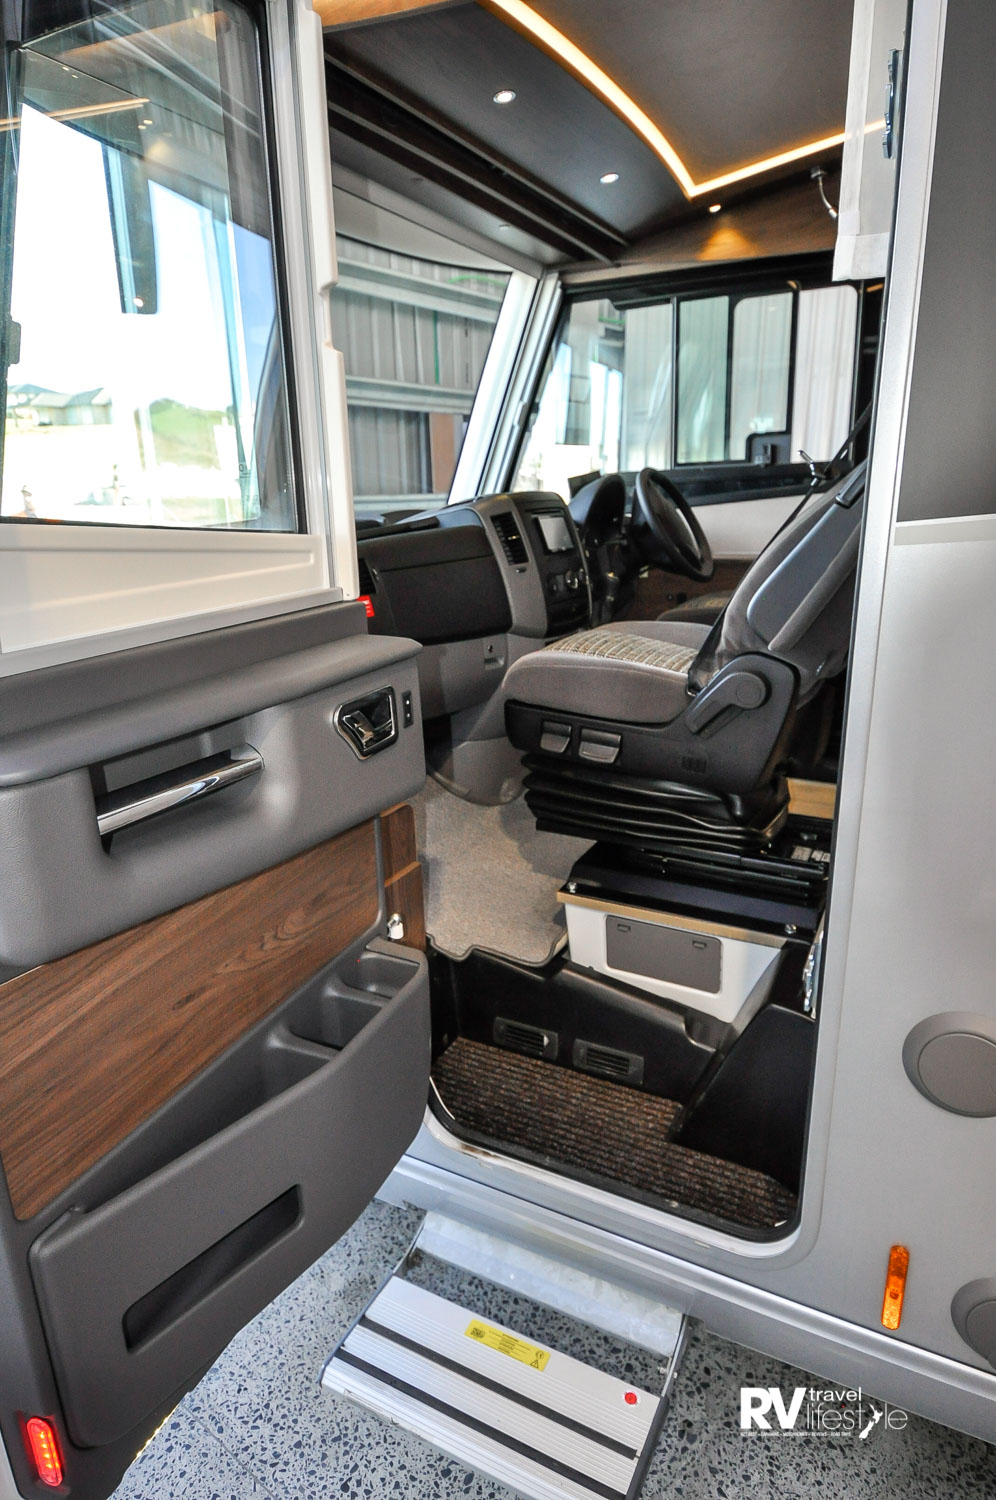 Passenger door cab entry electric step, a spacious cab area with lots of storage spaces, drink holders and all the Mercedes-class goodies you would expect. The front shade window blind is electric